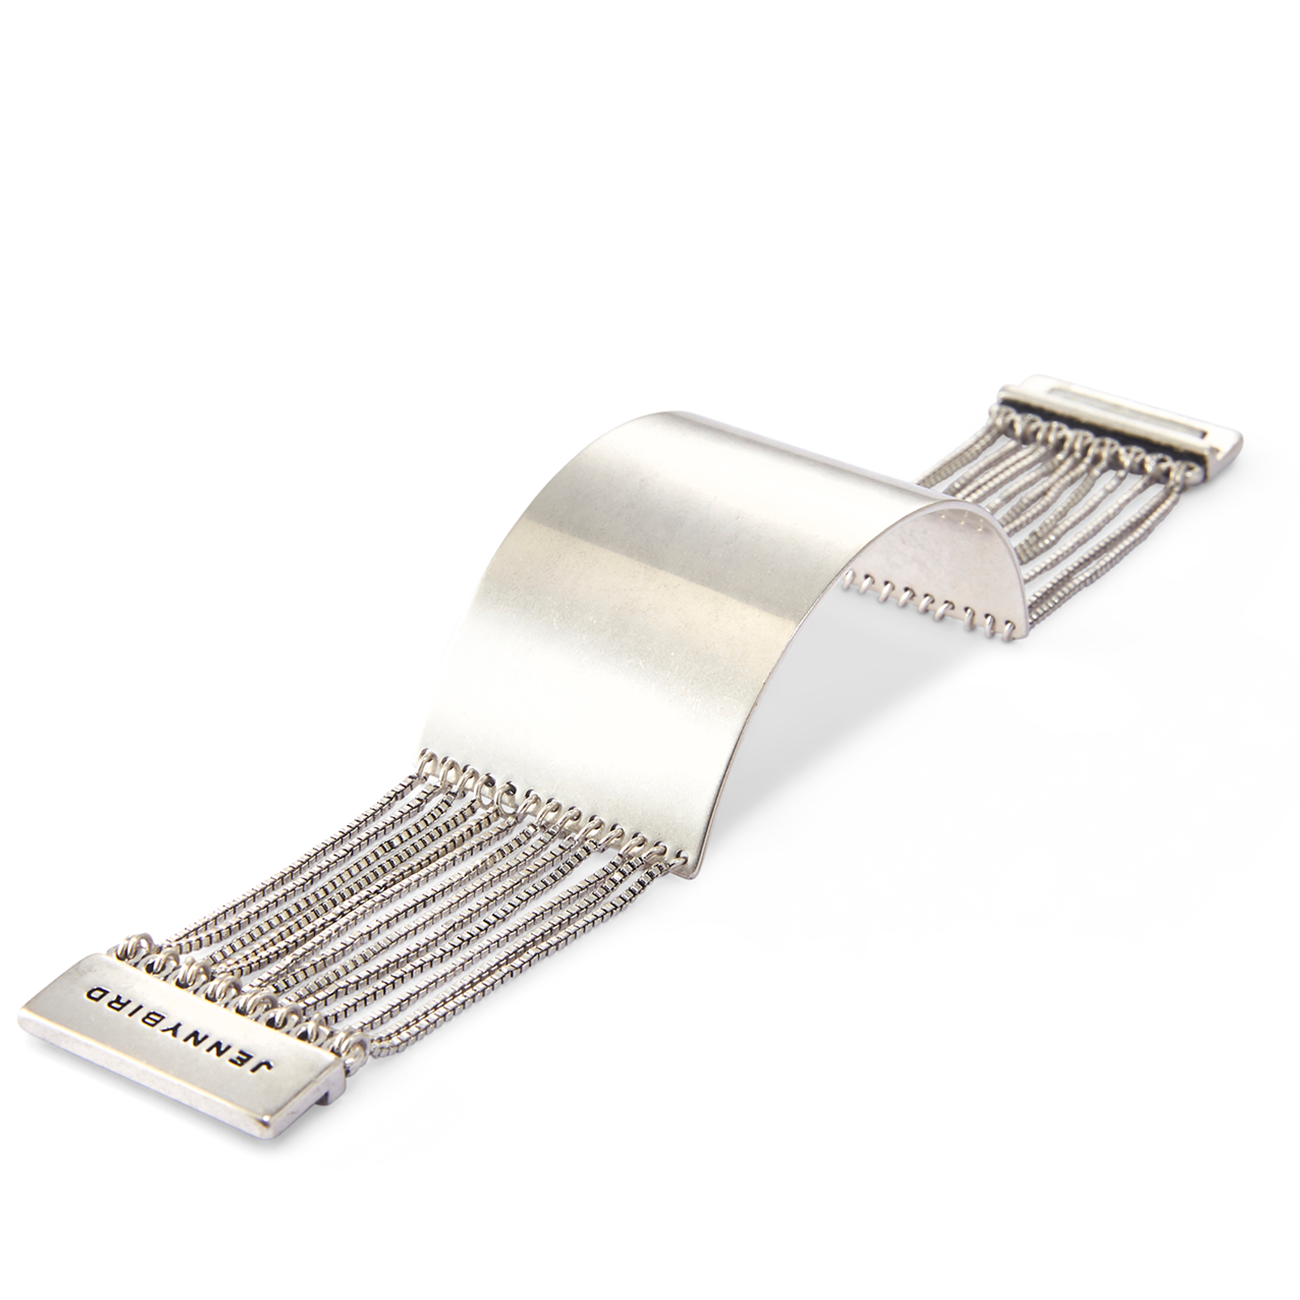 Silver Billie Cuff chain bracelet by Jenny Bird